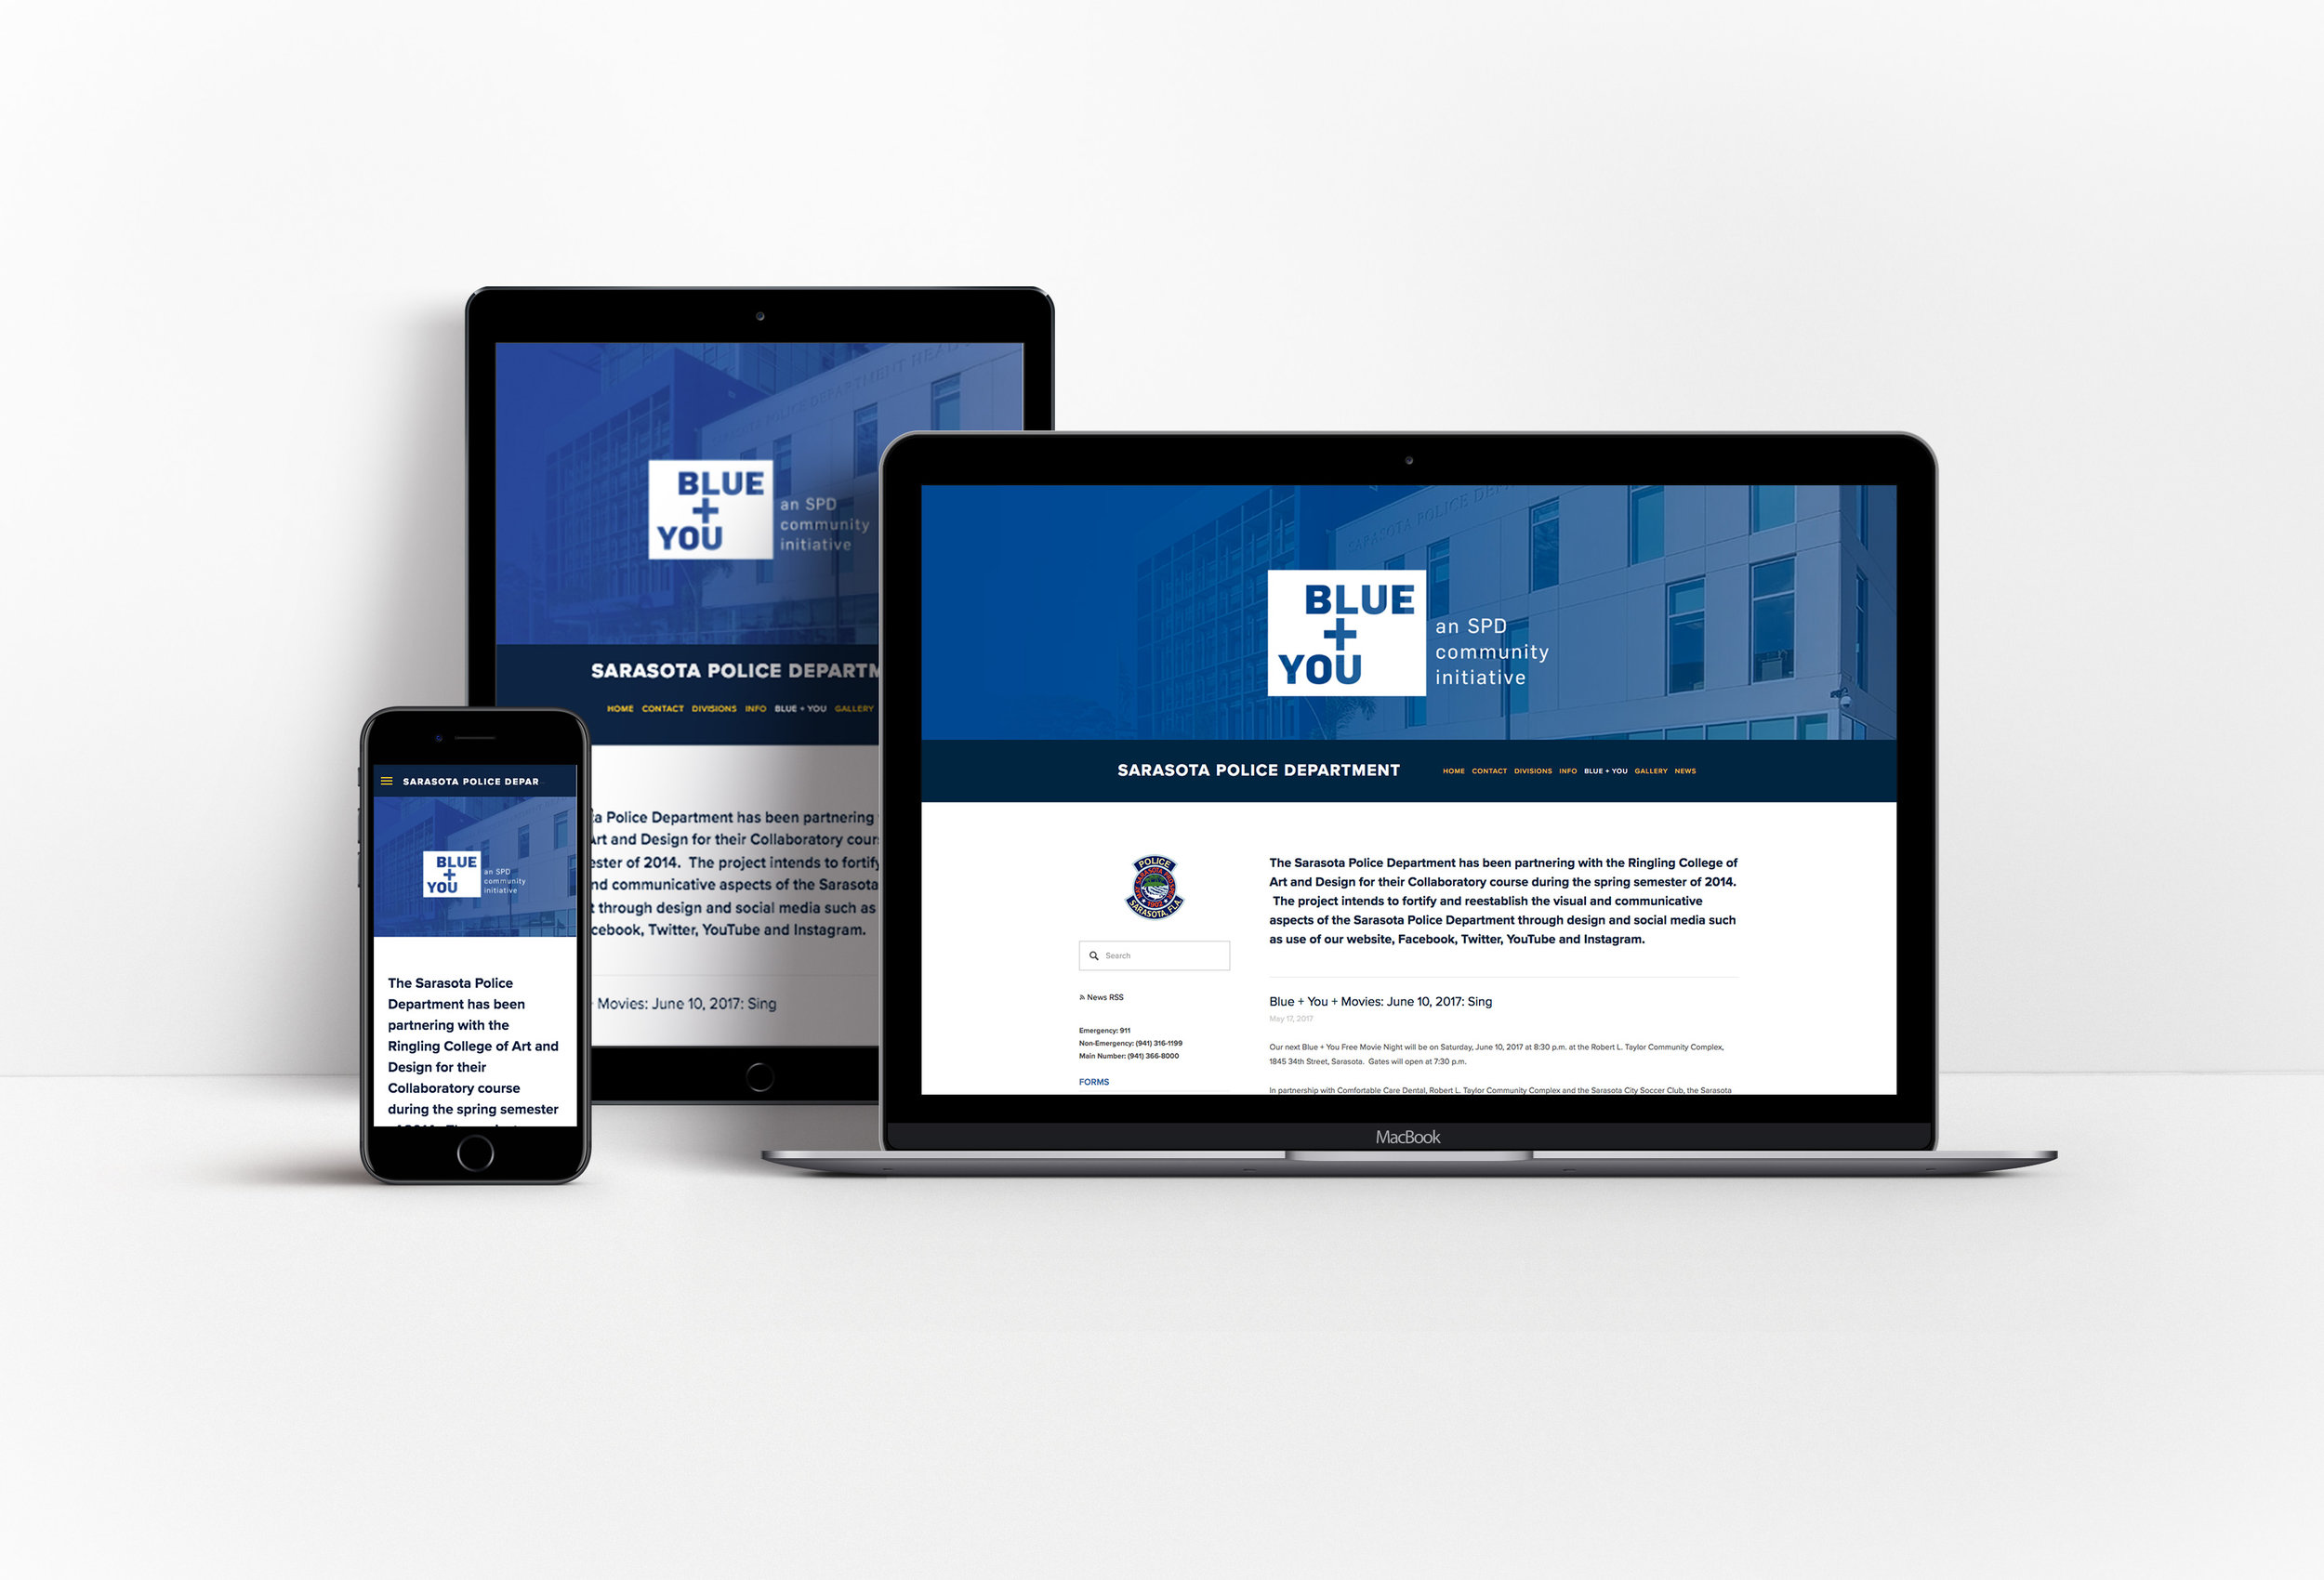 Website Re-Design - We created a new website for the Sarasota Police Department in order to update the look and feel, increase discoverability of important information, and to provide make it responsive for users on any device.